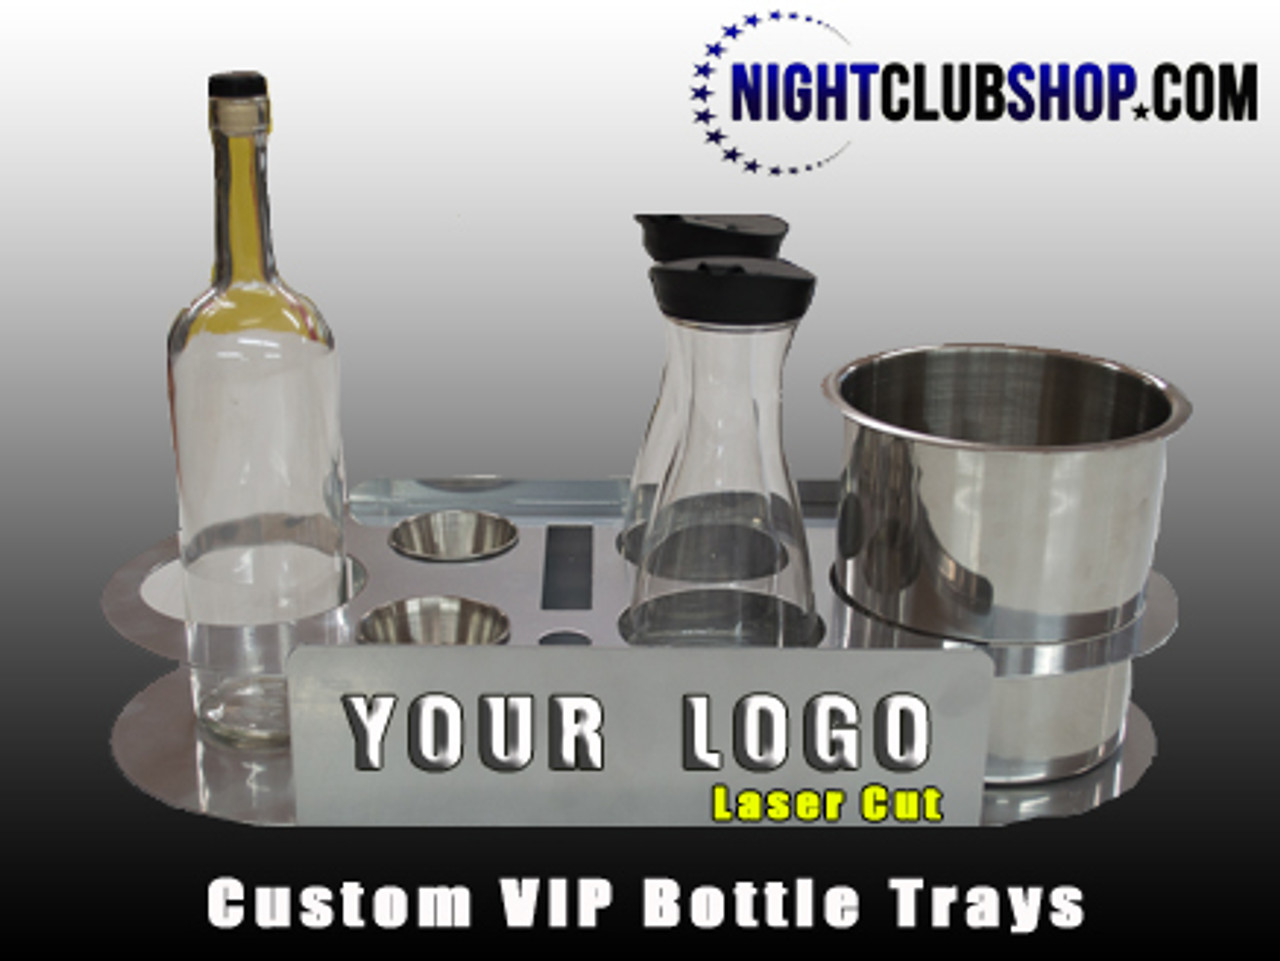 branded, Custom, tray, champagne, Bottle Service, Serving Tray, VIP, tray, bottle